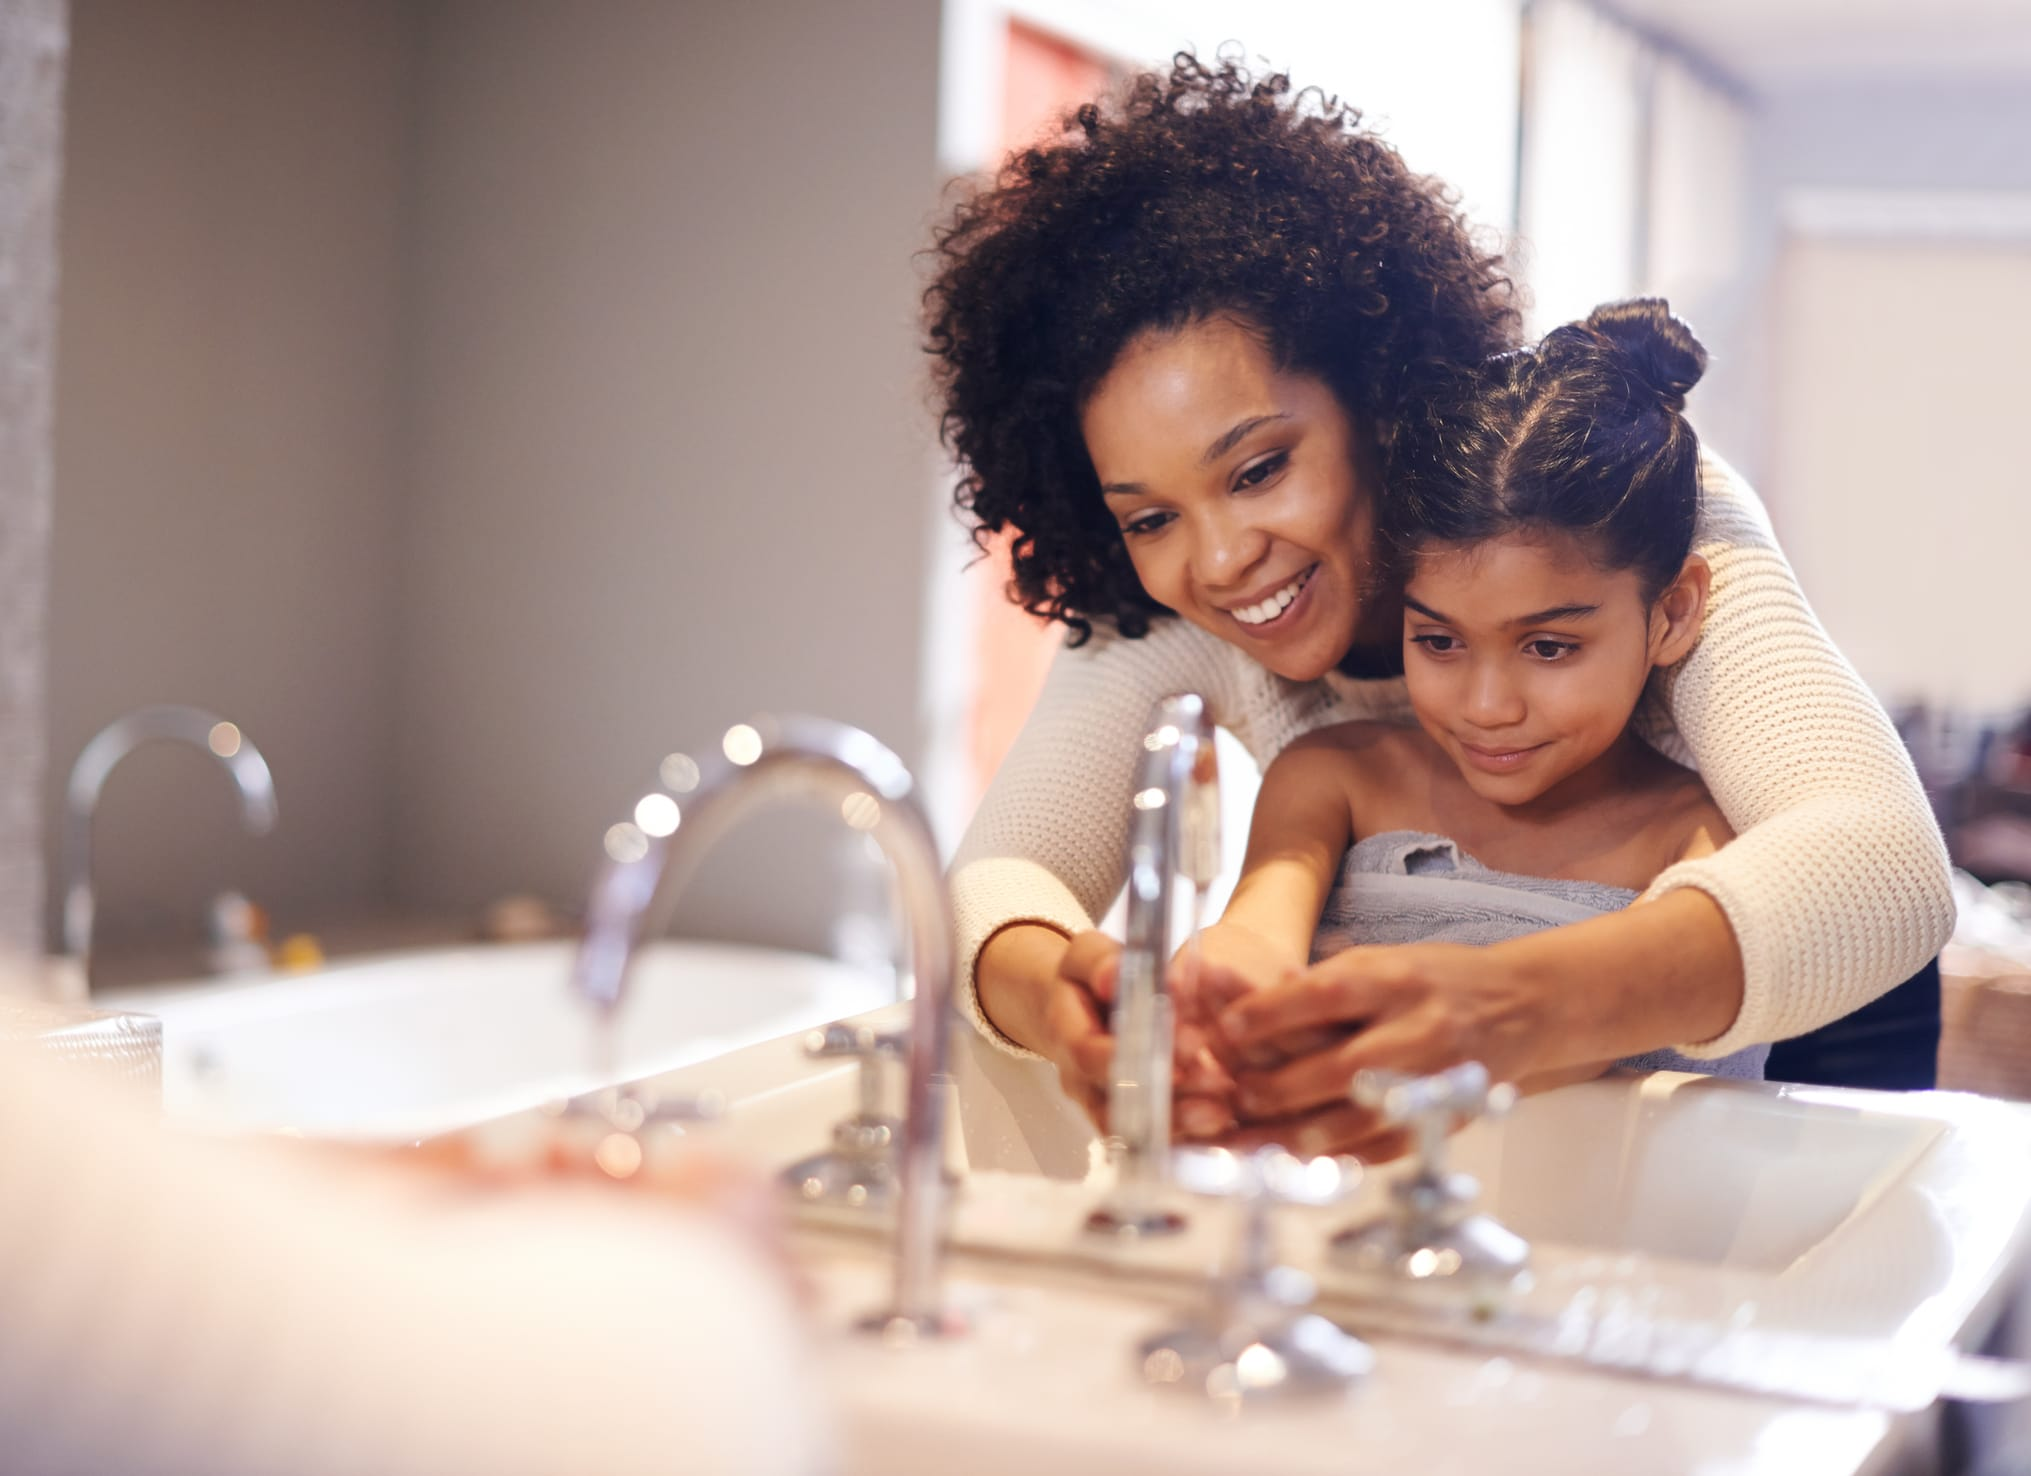 How Can I Keep My Bathroom Safe for Kids?